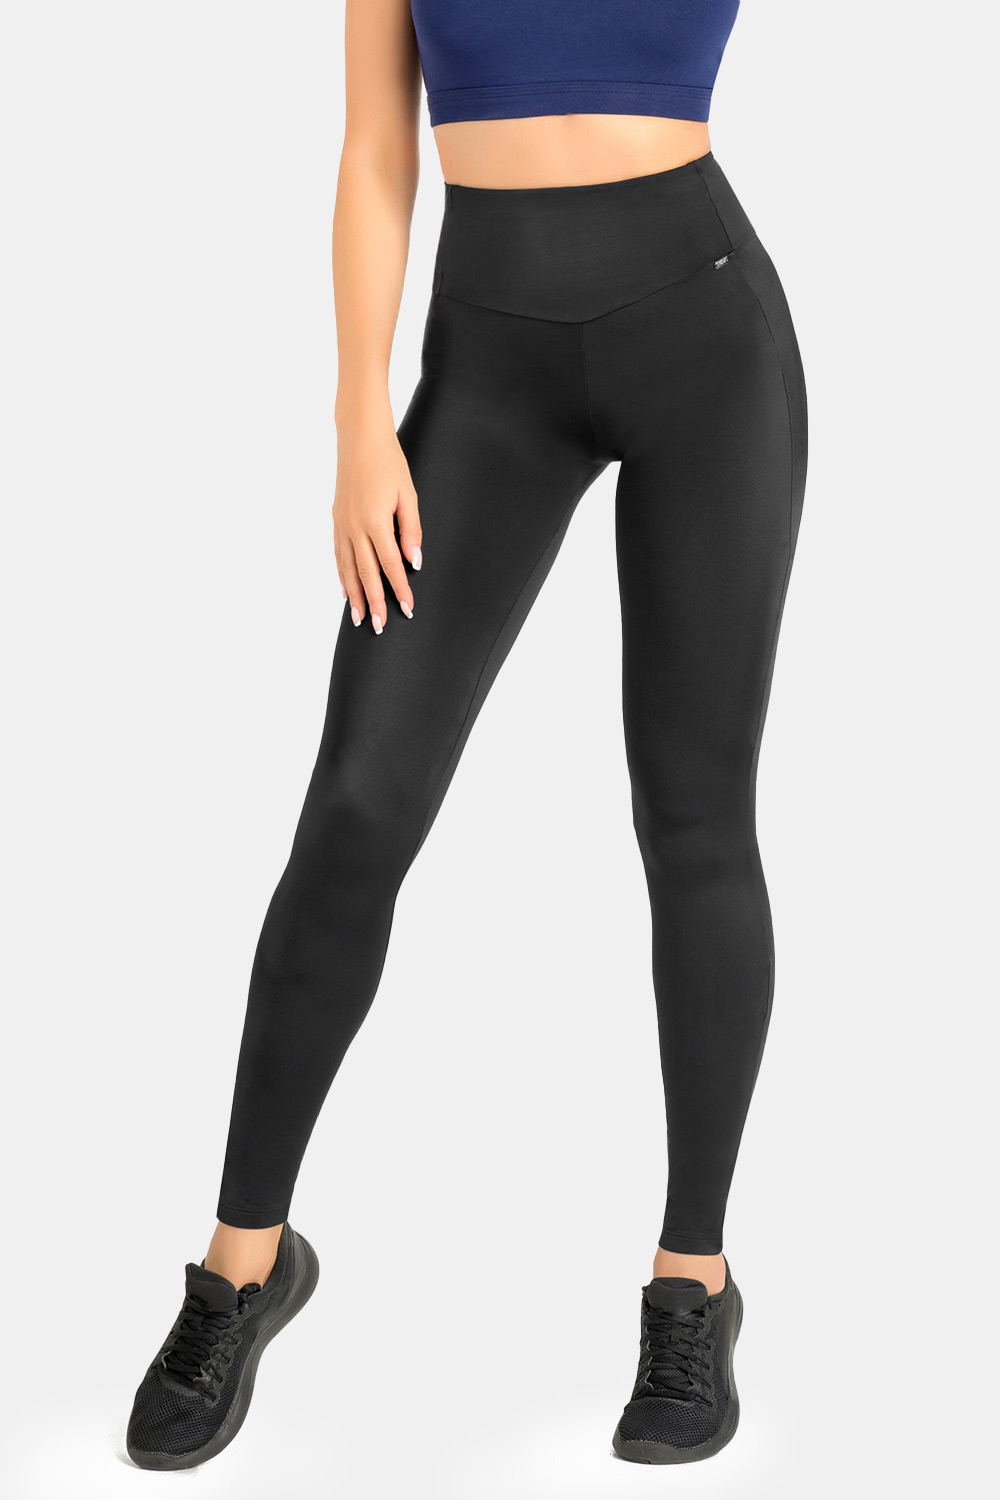 Lejdi Long sport leggings